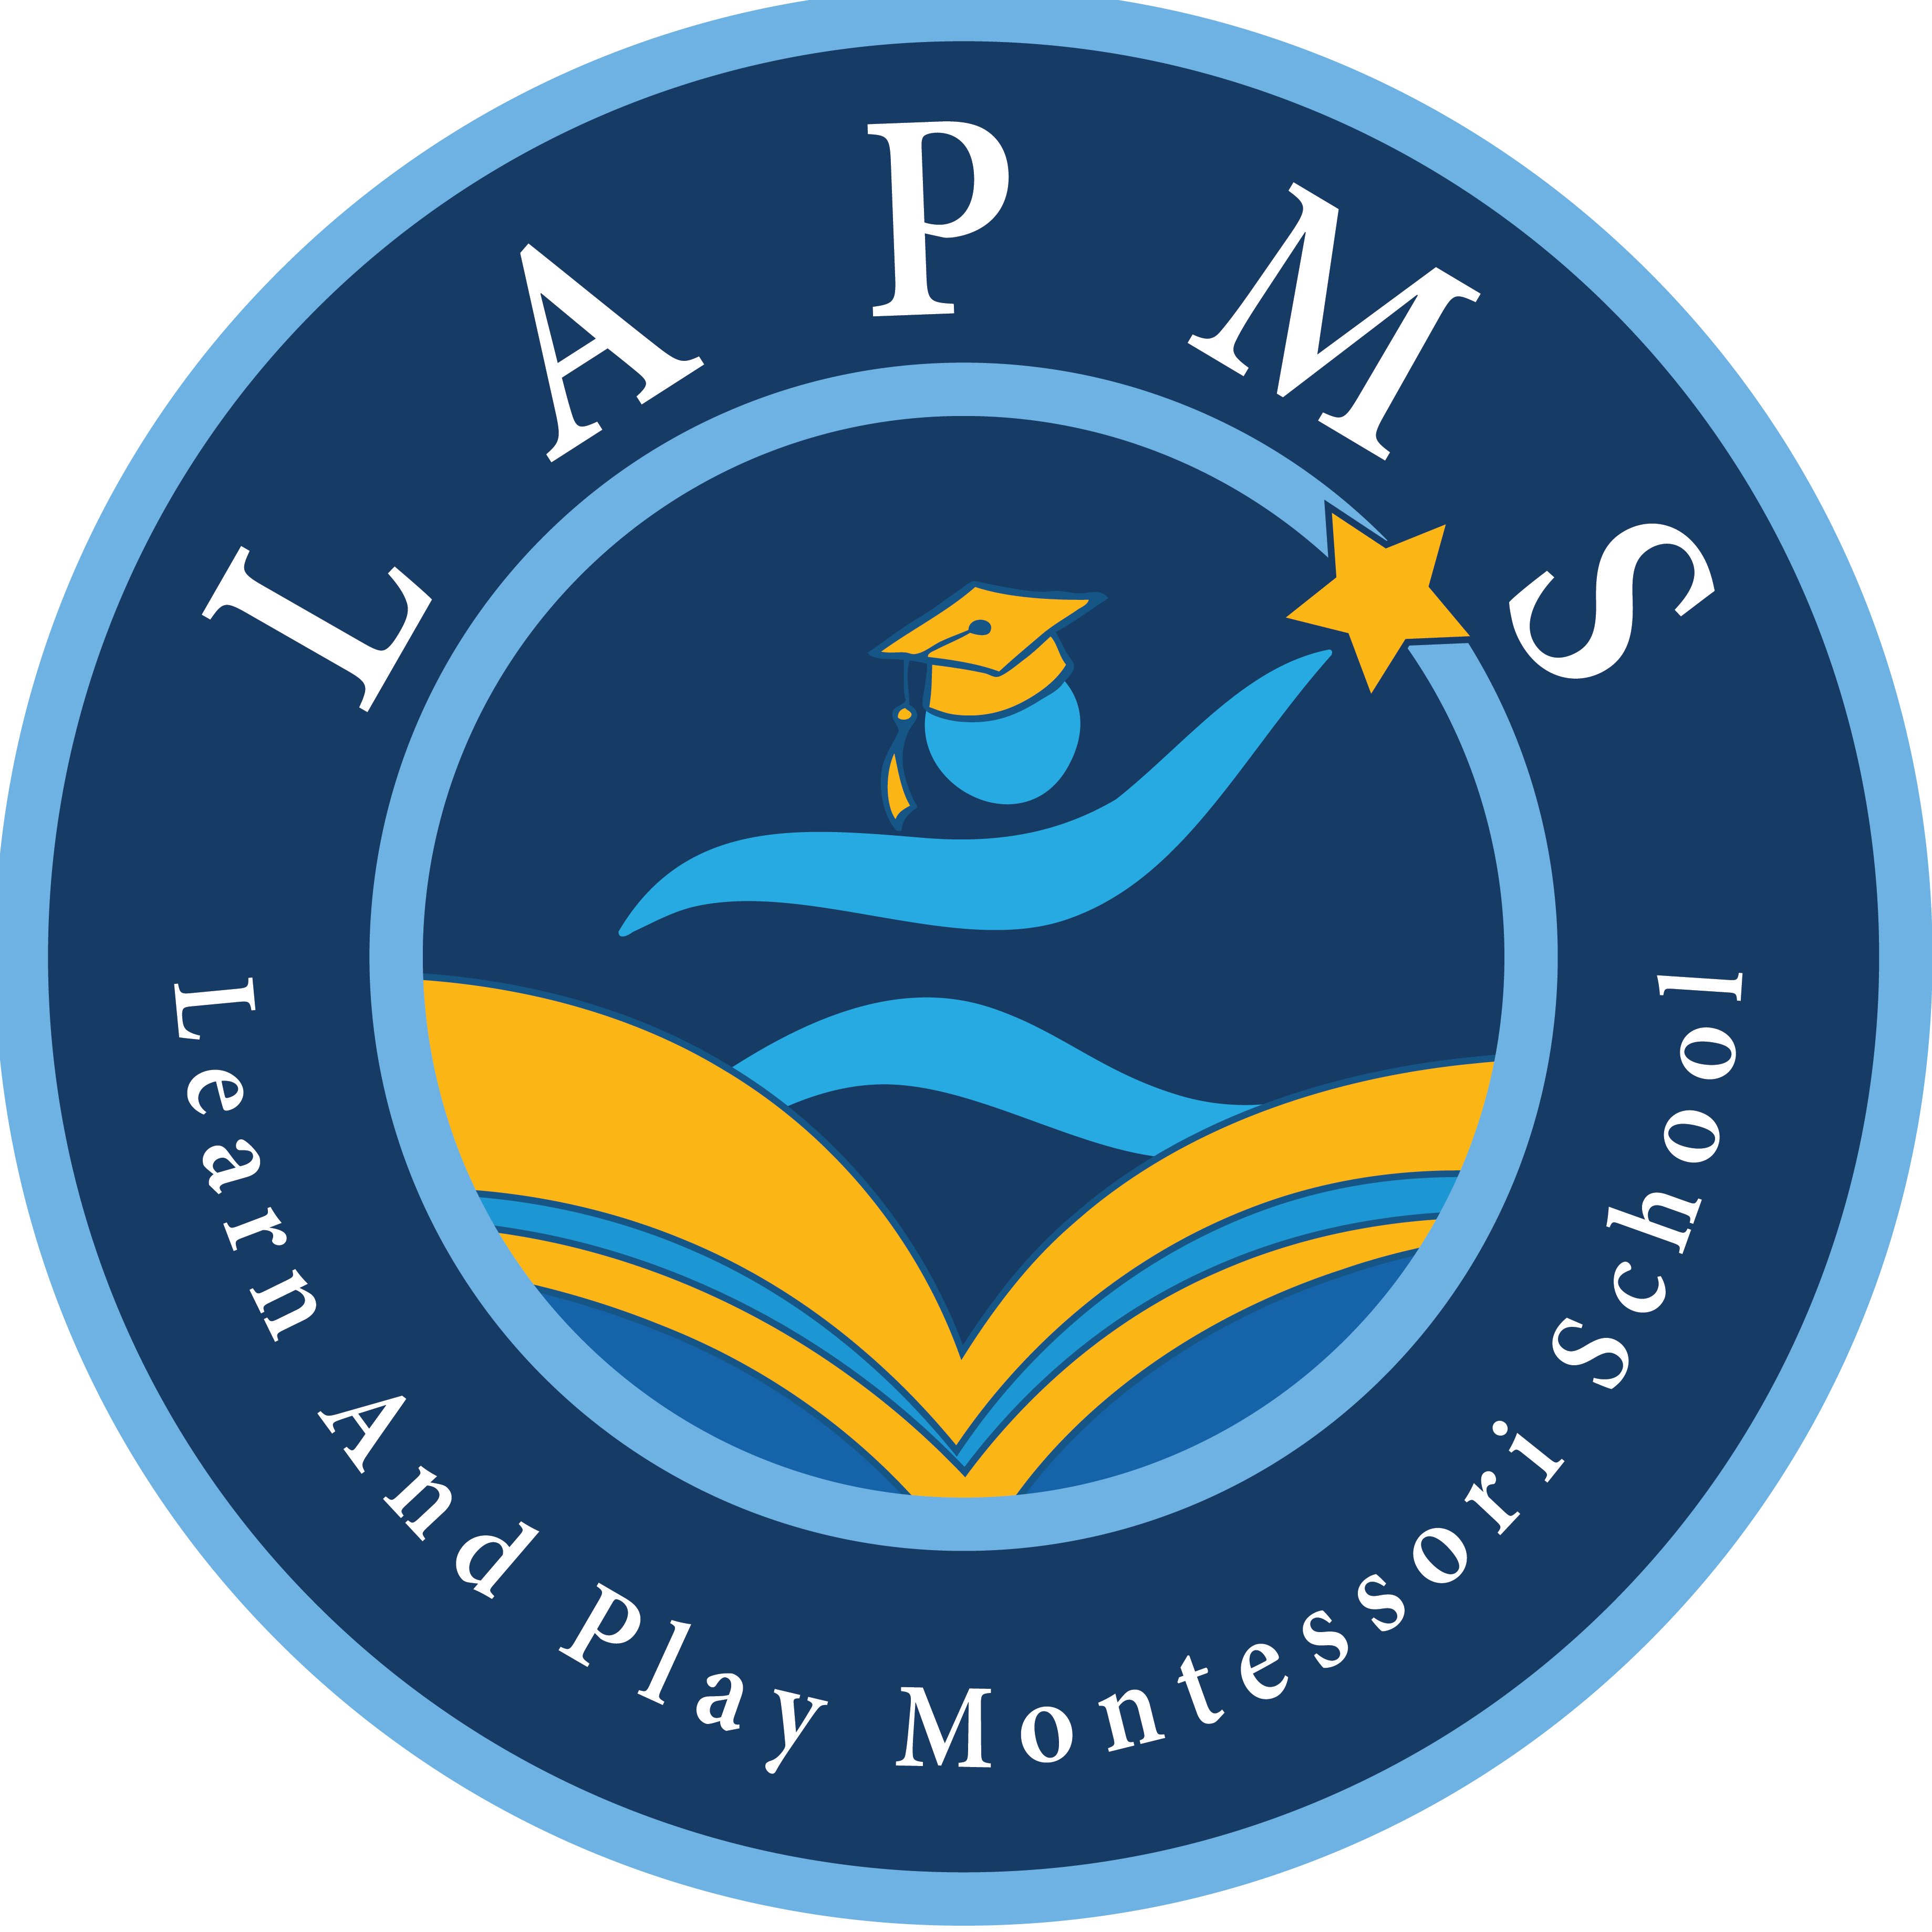 Learn And Play Montessori School